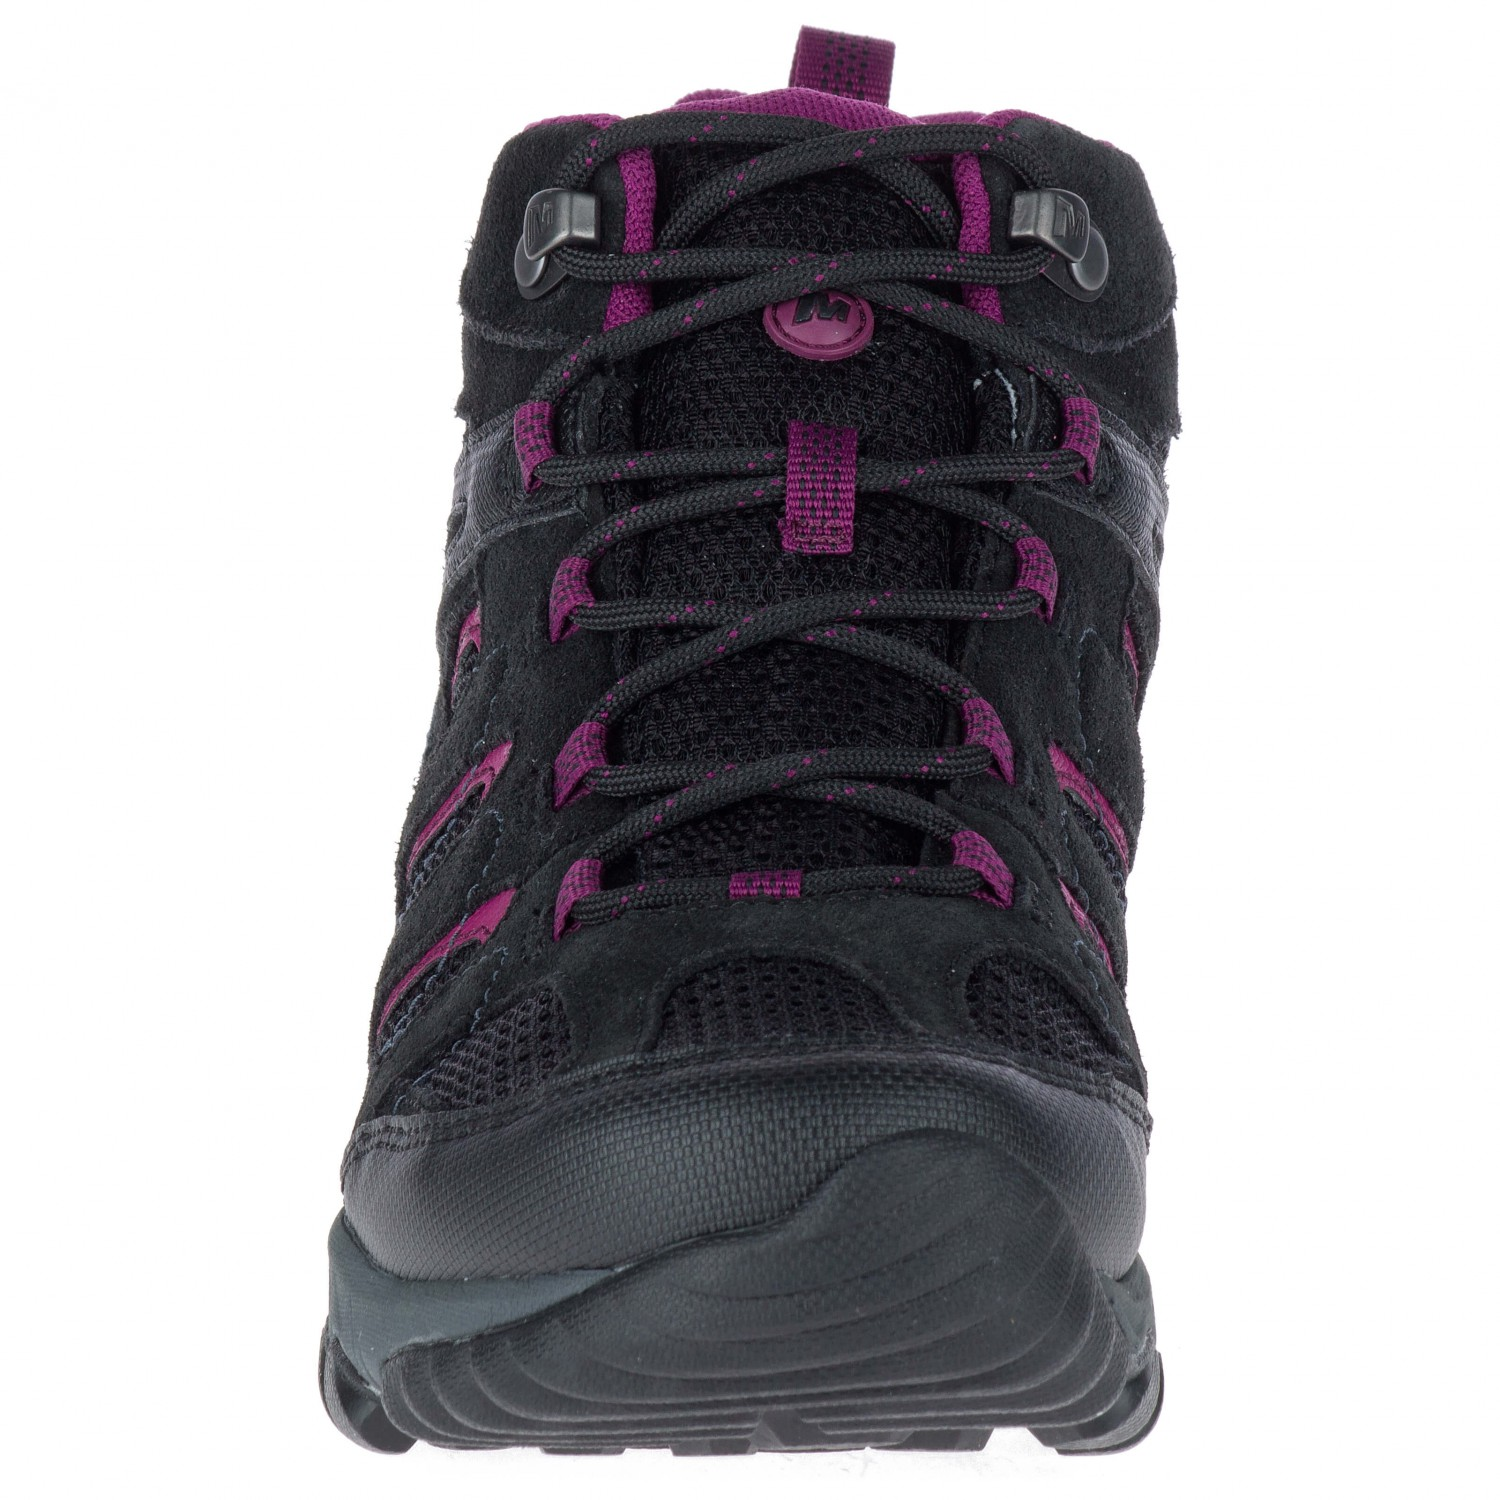 28f38f6065d Merrell - Women's Outmost Mid Vent GTX - Walking boots